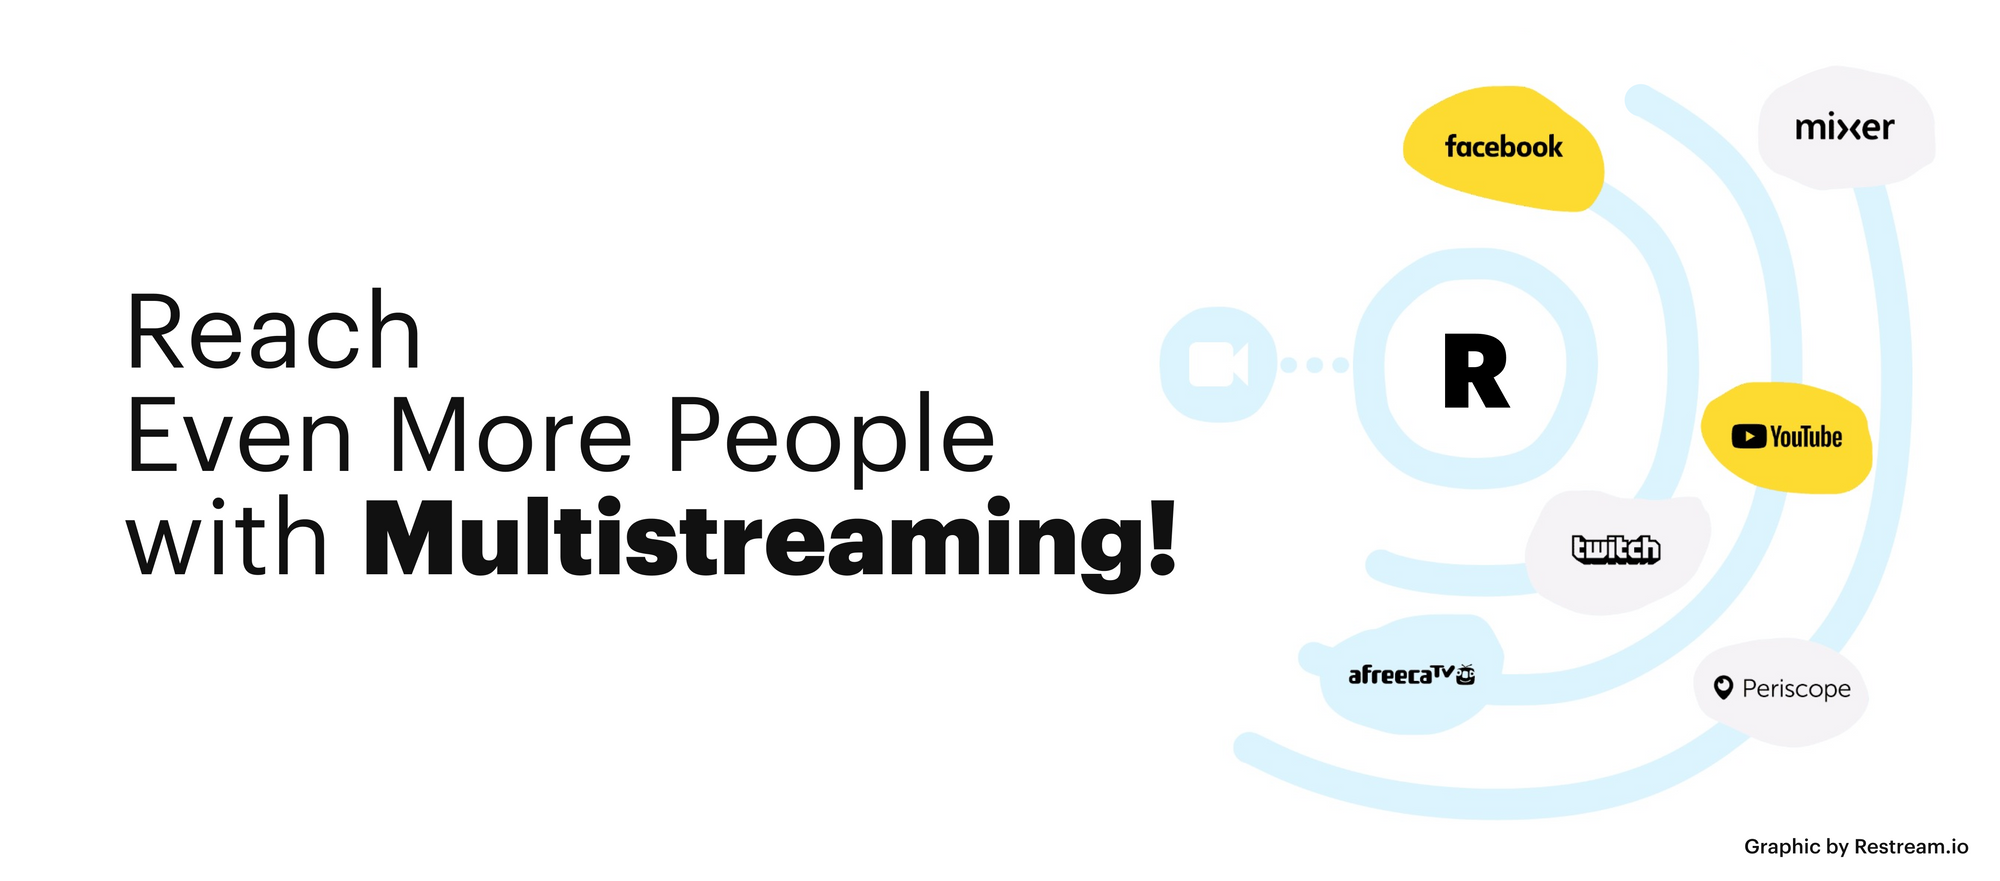 Reach Even More People with Multistreaming!